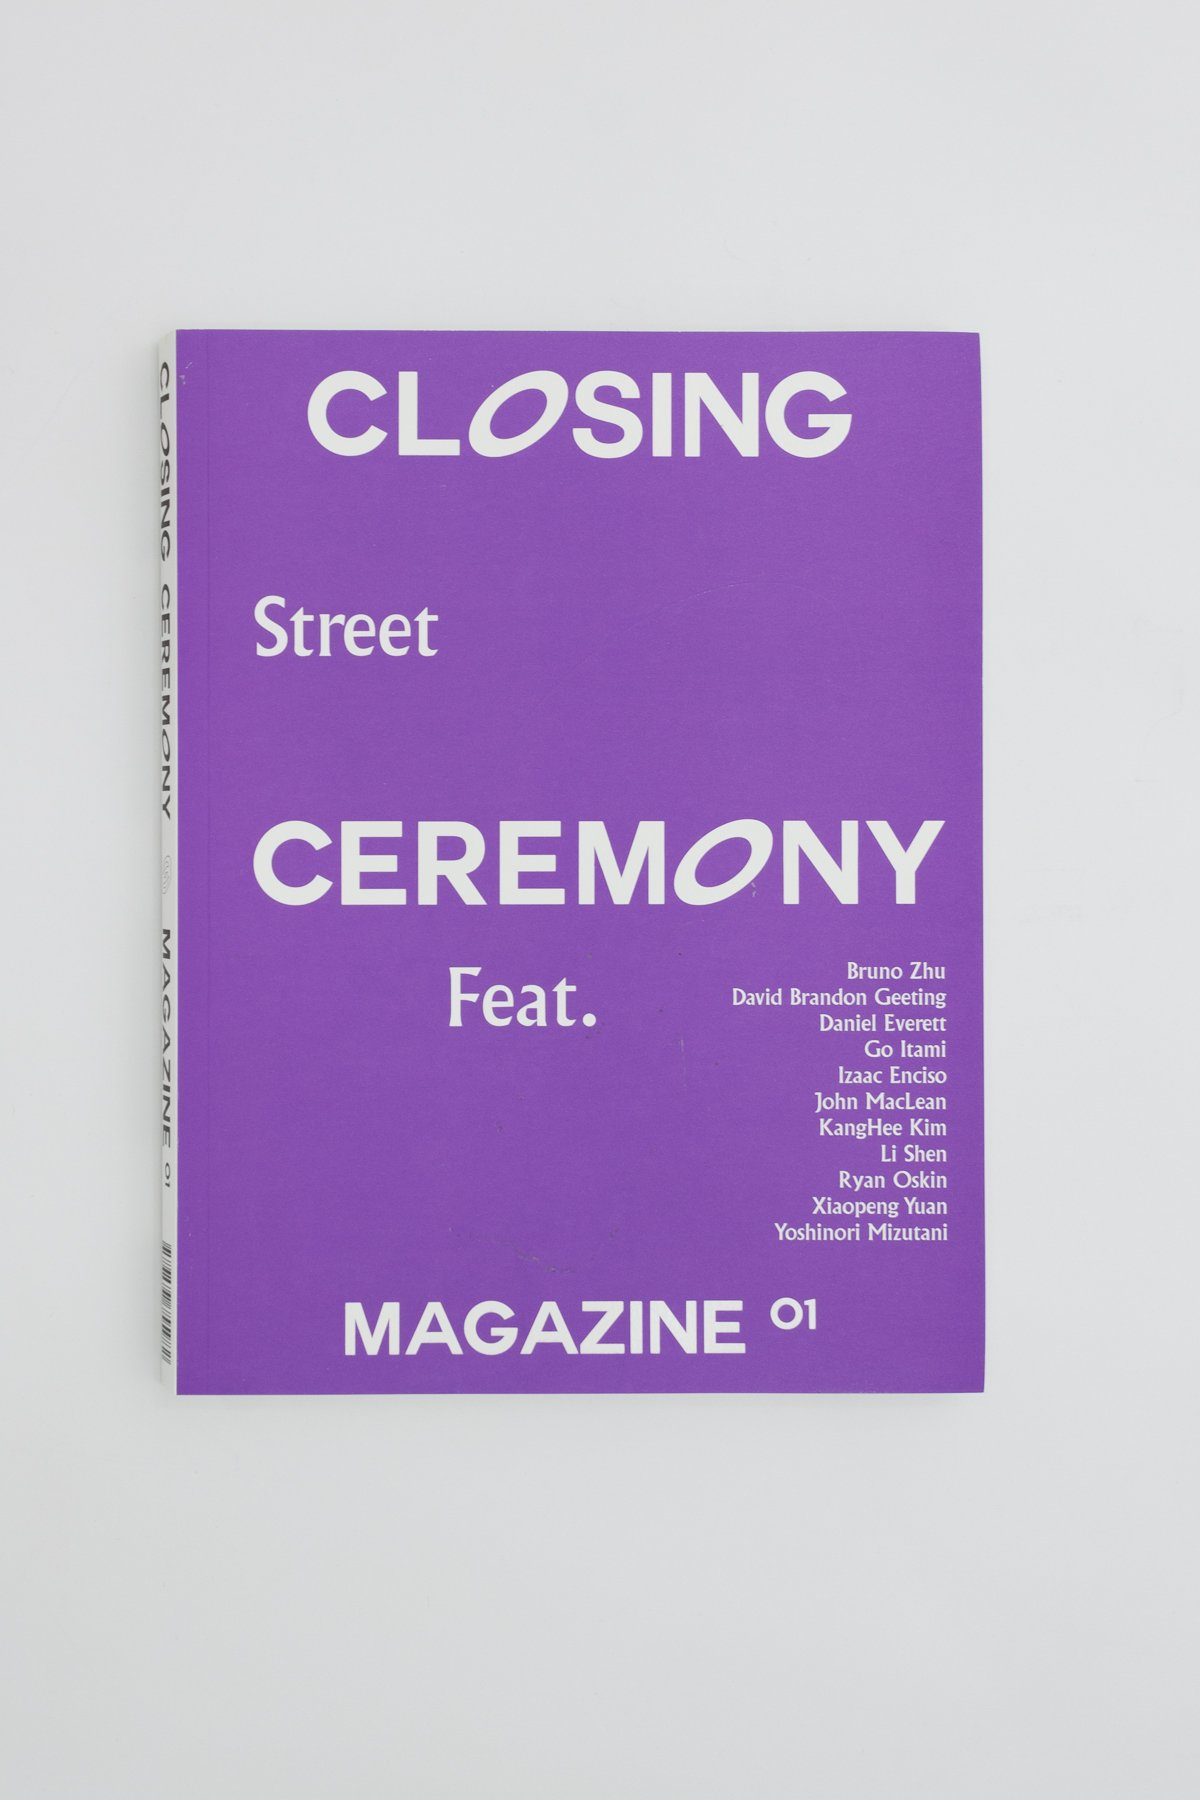 """""""It's a closing ceremony when pressing the shutter for creation.""""   Closing Ceremony Magazine is a ceremony for the traditional/classic photography and a warm welcoming to the new.  The internet and use of graphics software has facilitated an unprecedented speed, which has had a decisive impact on the ways we see and represent our direct environment. While at the same time, the new generation of photographers has found groundbreaking to relocate the borders, hence our awareness of urban reality. The bond between photography and the urban environment has to be reconsidered through a wider range of affiliations, and what makes contemporary street photography so compelling is its ability to lay bare the intricate that determine our perception of reality.   Closing Ceremony magazine début issue features 14 contributing photographers: Bruno Zhu, Corey Olsen, David Brandon Geeting, Daniel Everett, Go Itami, Hiroyuki Sato,  Izaac Enciso,  John MacLean, KangHee Kim, Ryan Oskin, Sergiy Barchuk, Shen Li, Xiaopeng Yuan and Yoshinori Mizutani, their unpublished new works and interviews along with an essay written by Joël Vachero (Essay Author/ ECAL Teacher/ Visual Researcher) and exhibitions.  Same Paper presents, 2017"""